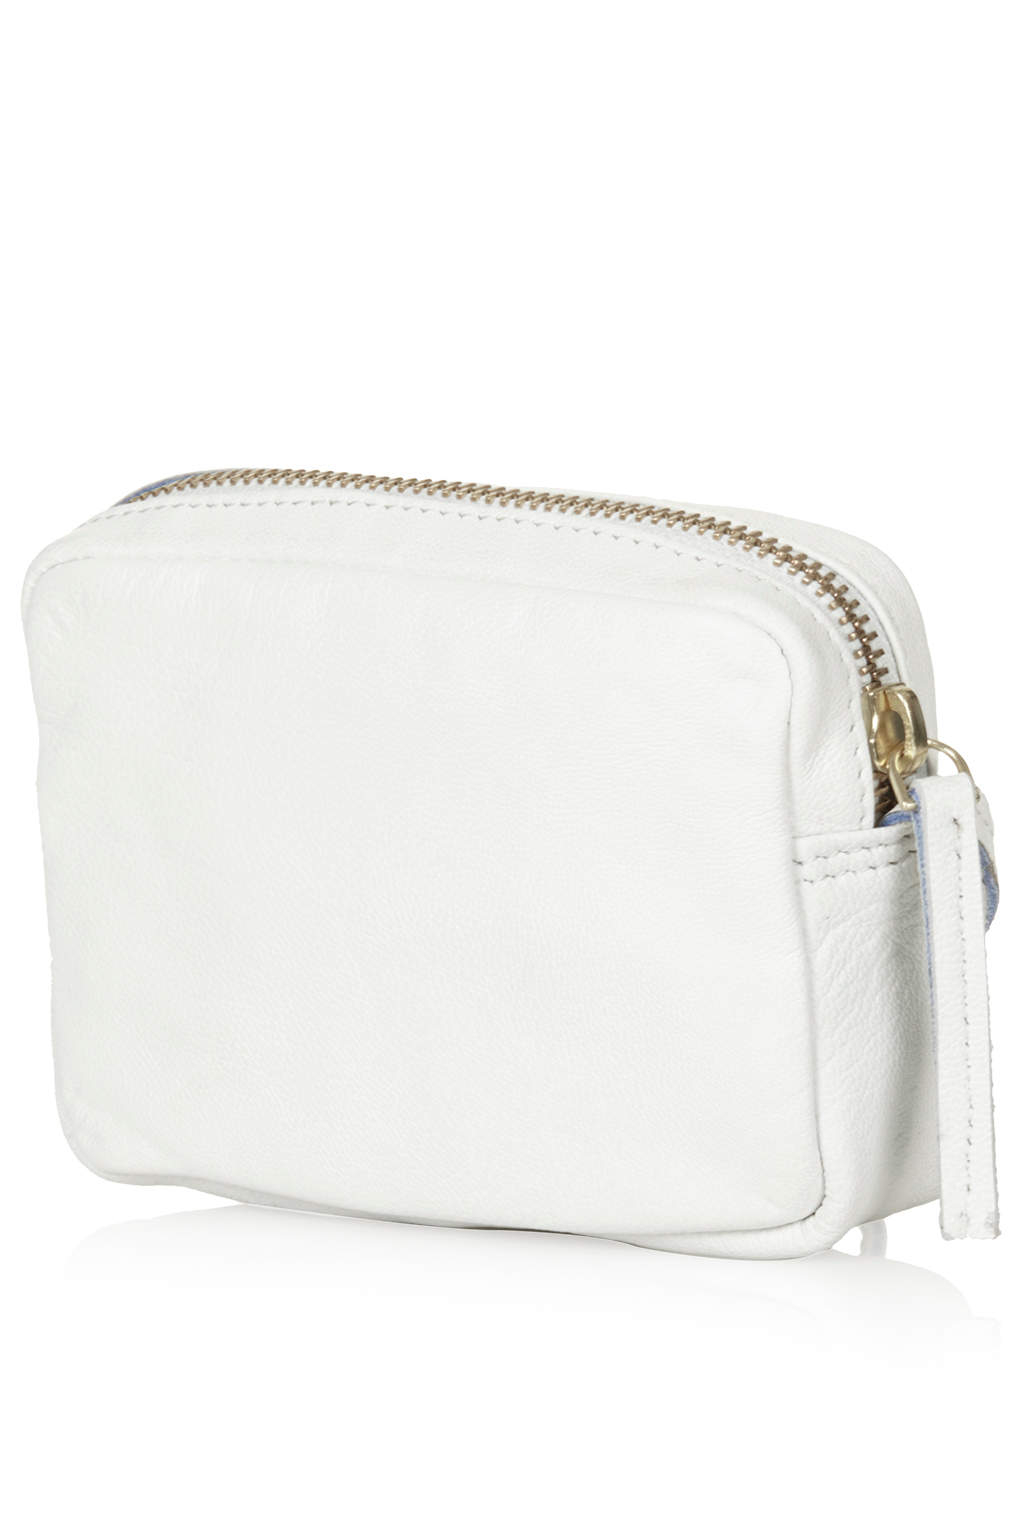 top-rated largest selection of 2019 best place for TOPSHOP Mini Twist Leather Crossbody Bag in White (Blue) - Lyst